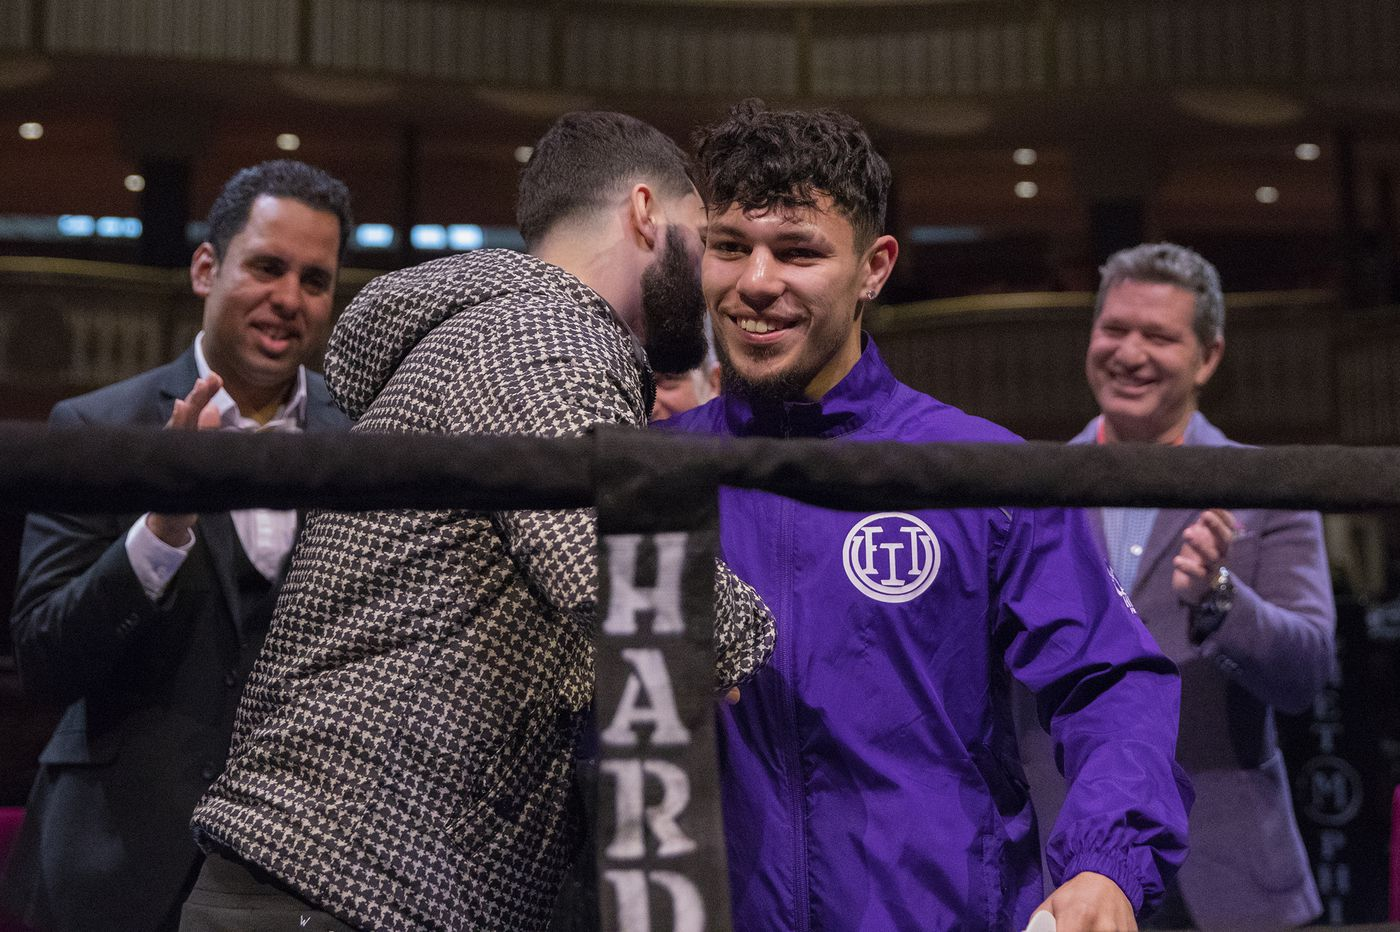 Philly lightweight Jeremy Cuevas finds edge in boxing through lifelong piano playing